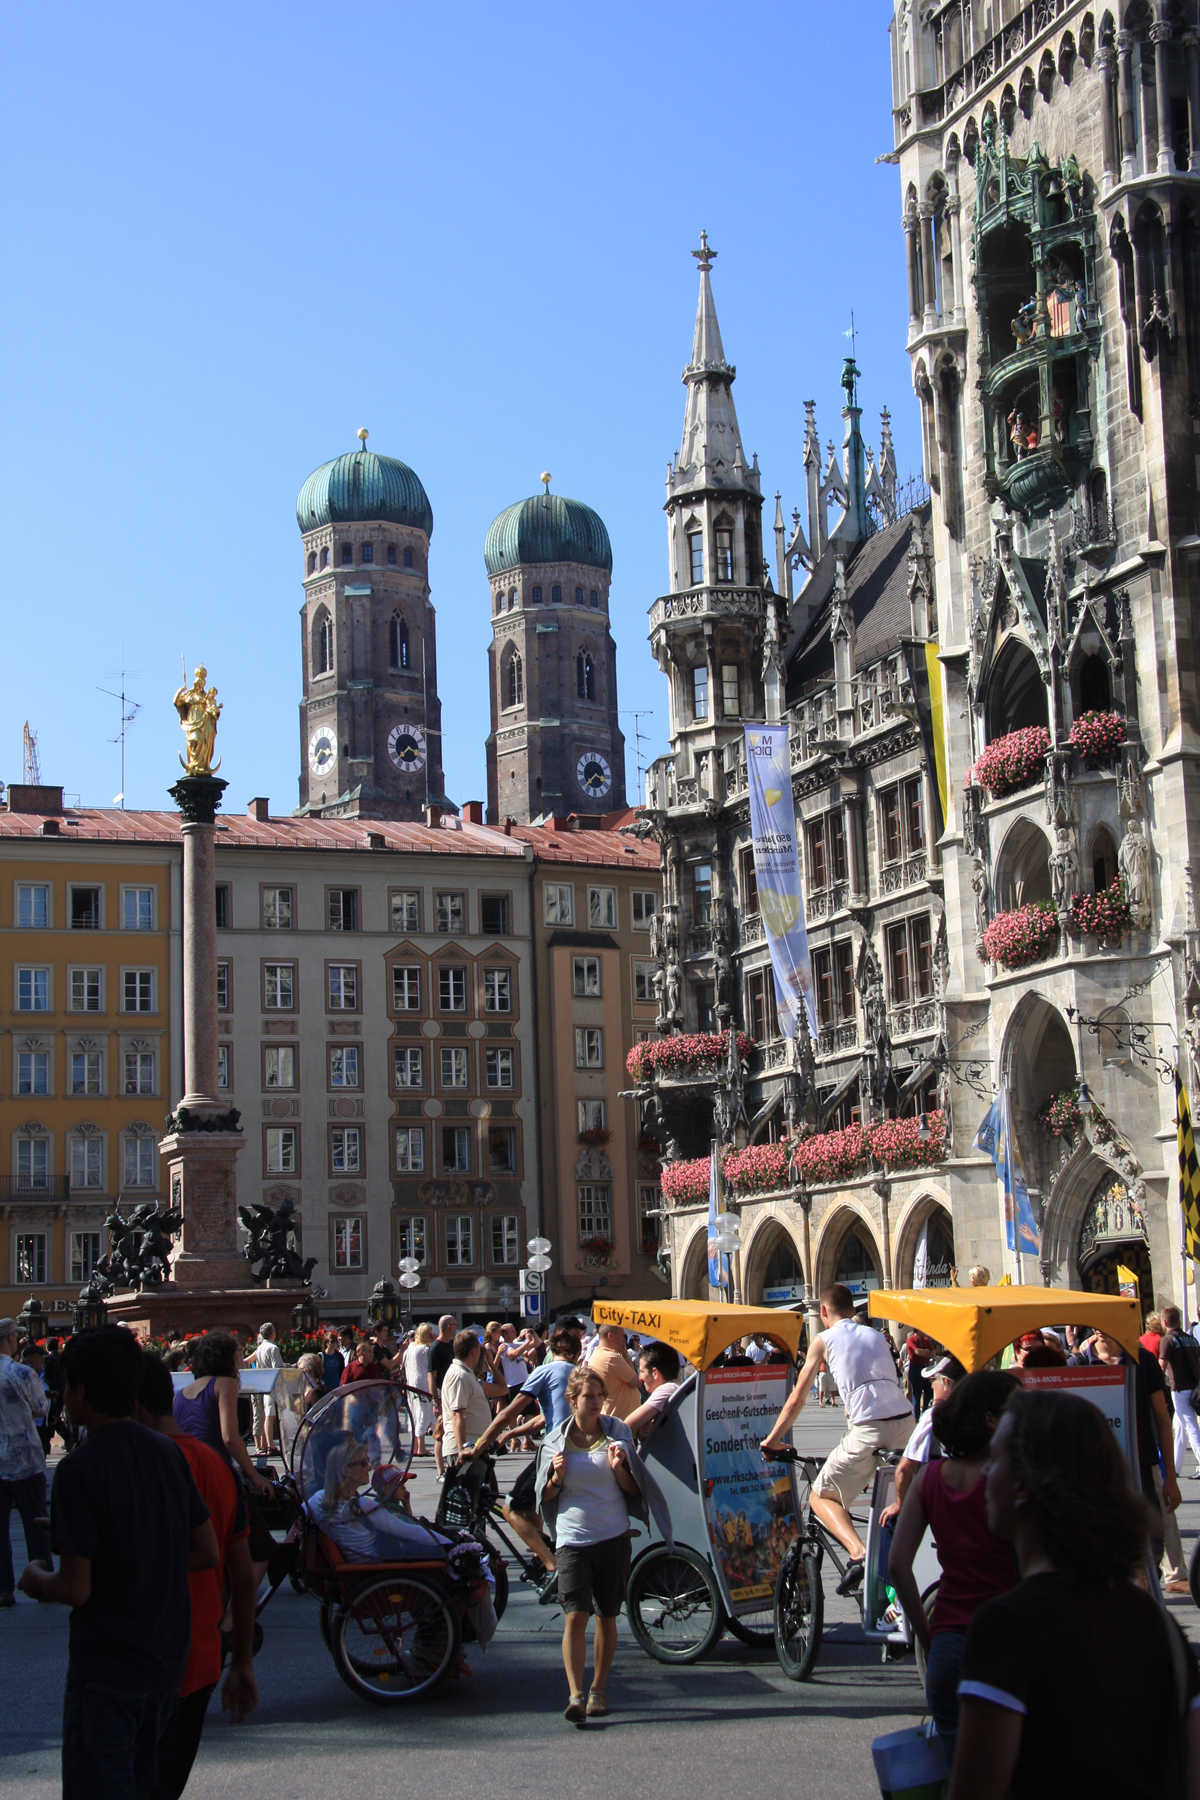 Pedal Taxis in Marienplatz, Munich, Bavaria, Germany